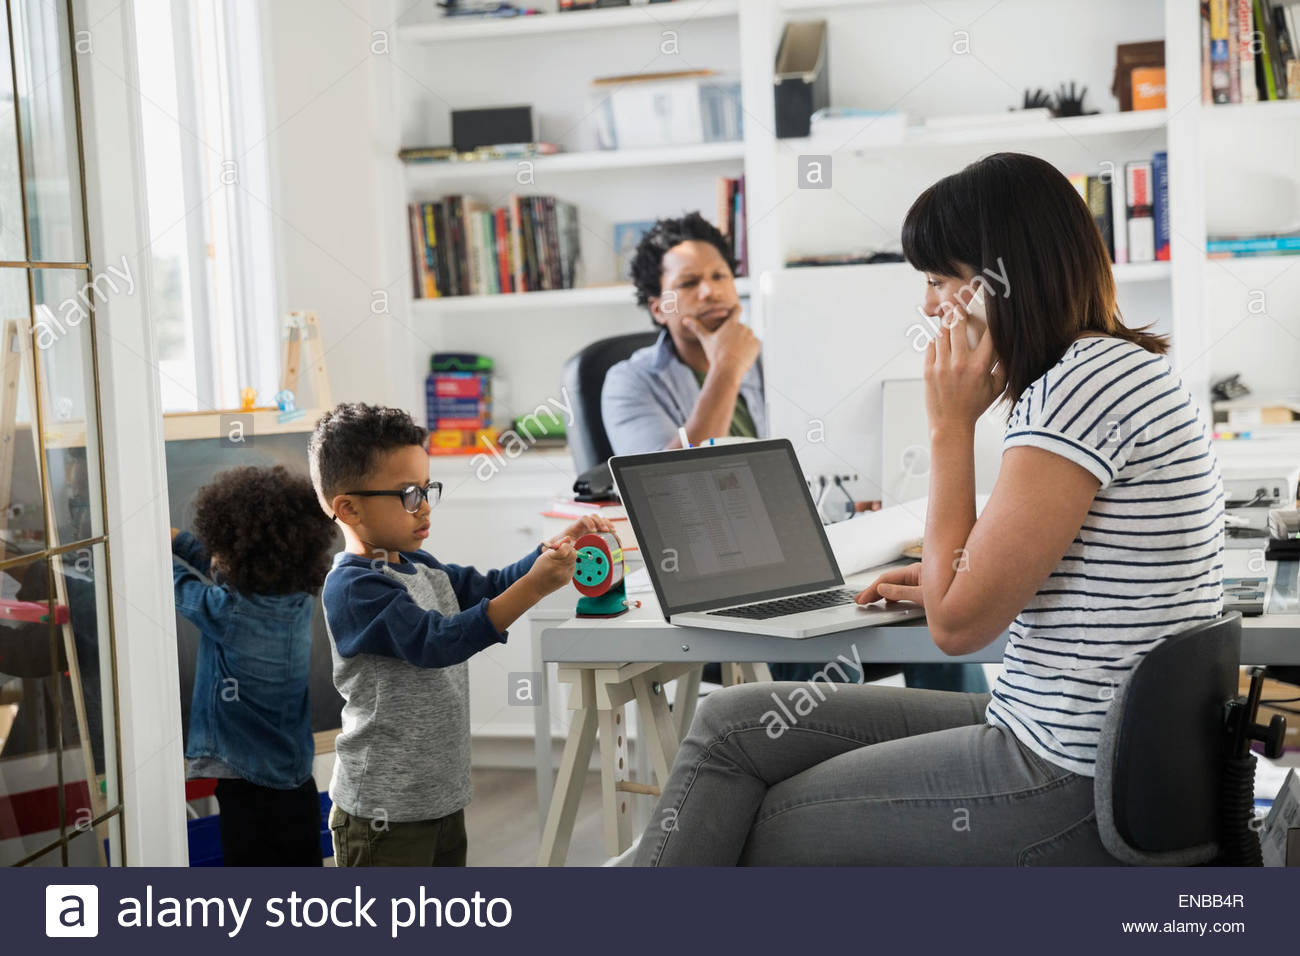 Parents working in home office with children playing - Stock Image